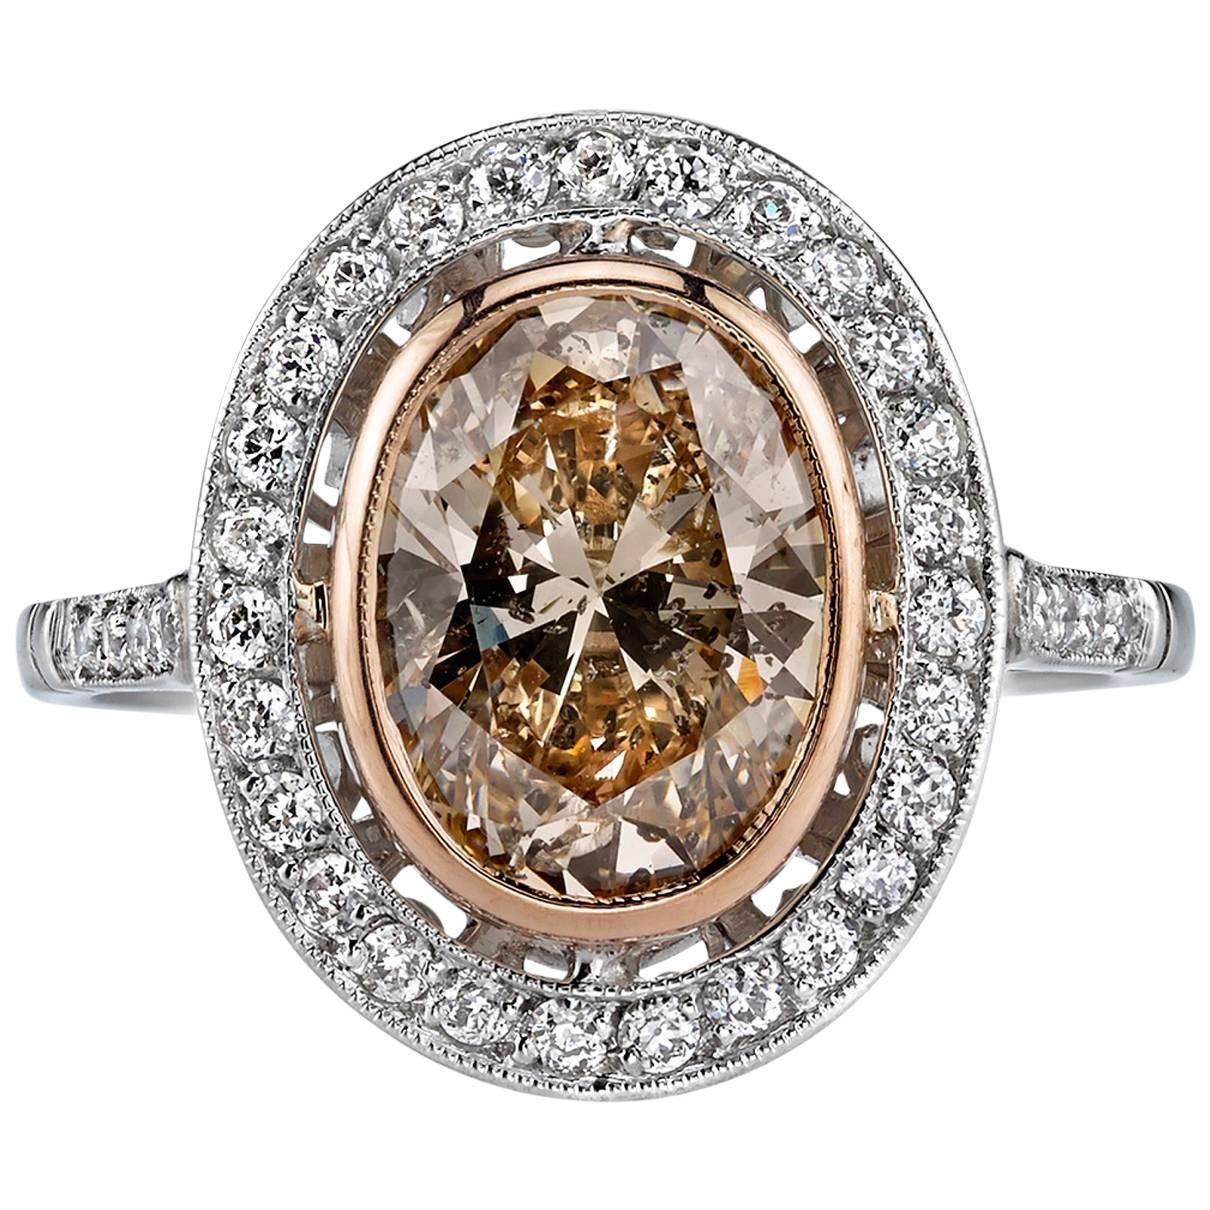 2 Carat Oval Diamond Gold Platinum Engagement Ring at 1stdibs